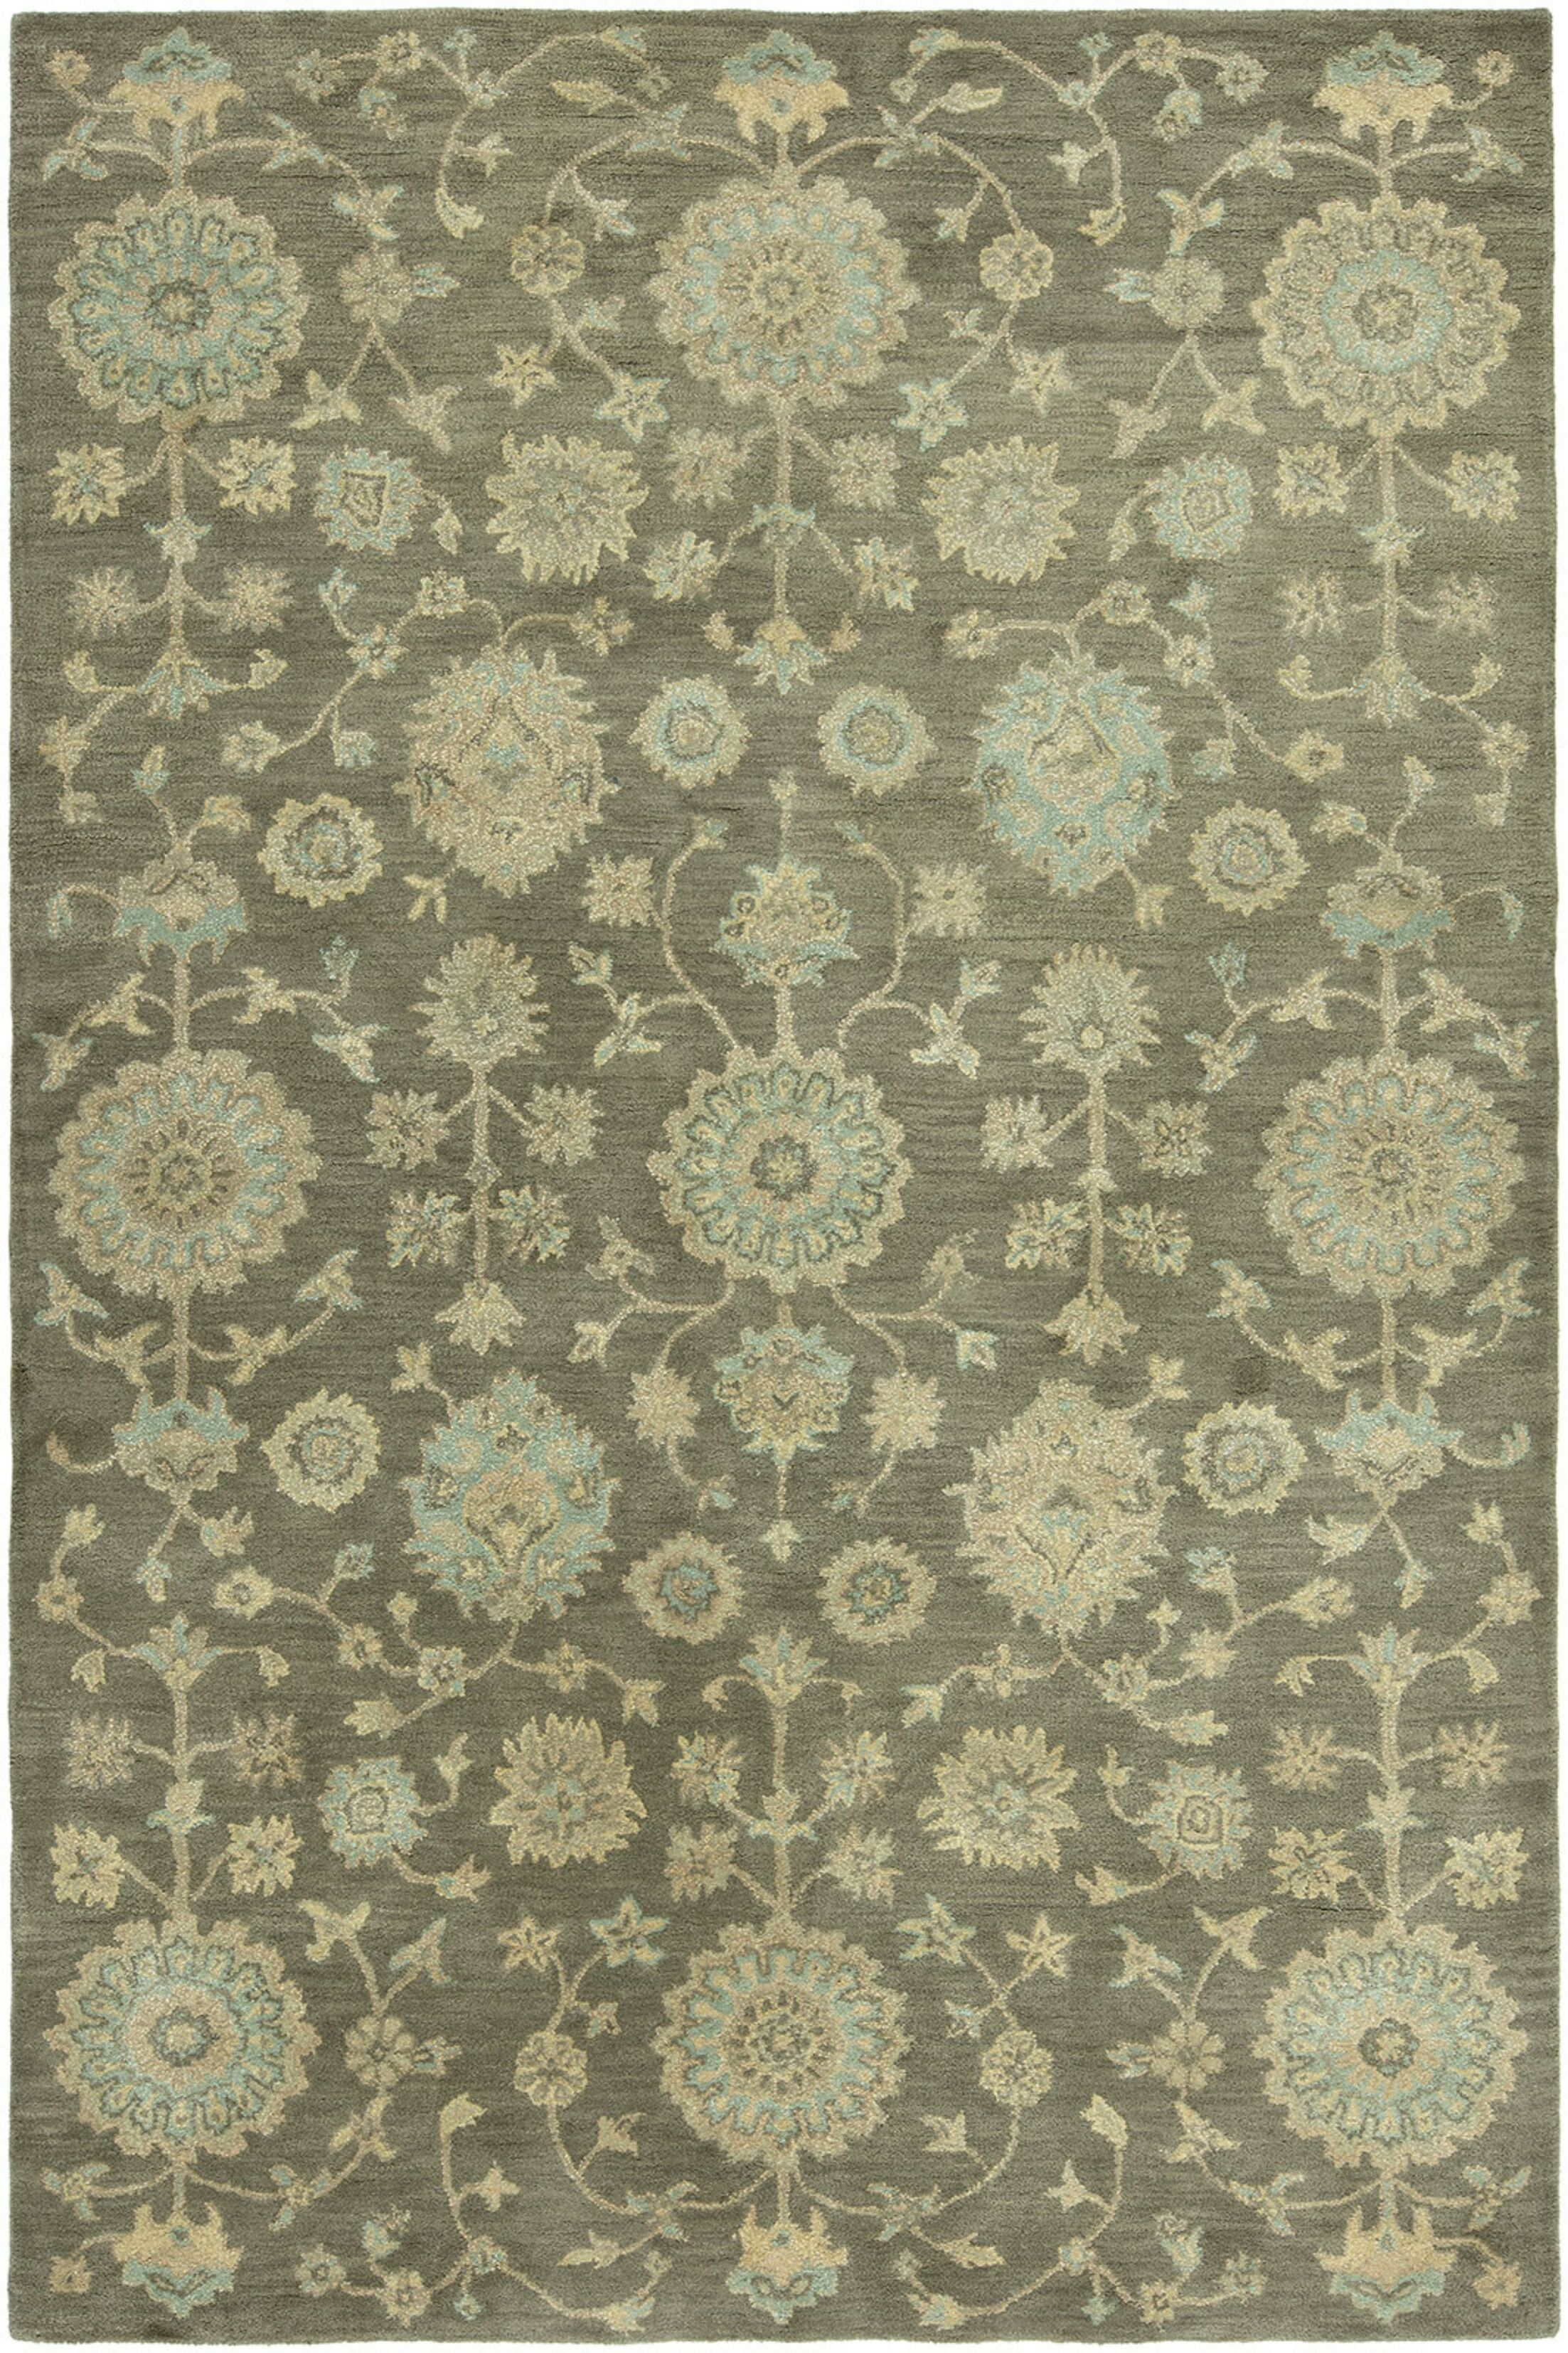 Gravette Hand-Tufted Wool Brown Area Rug Rug Size: Rectangle 3'6